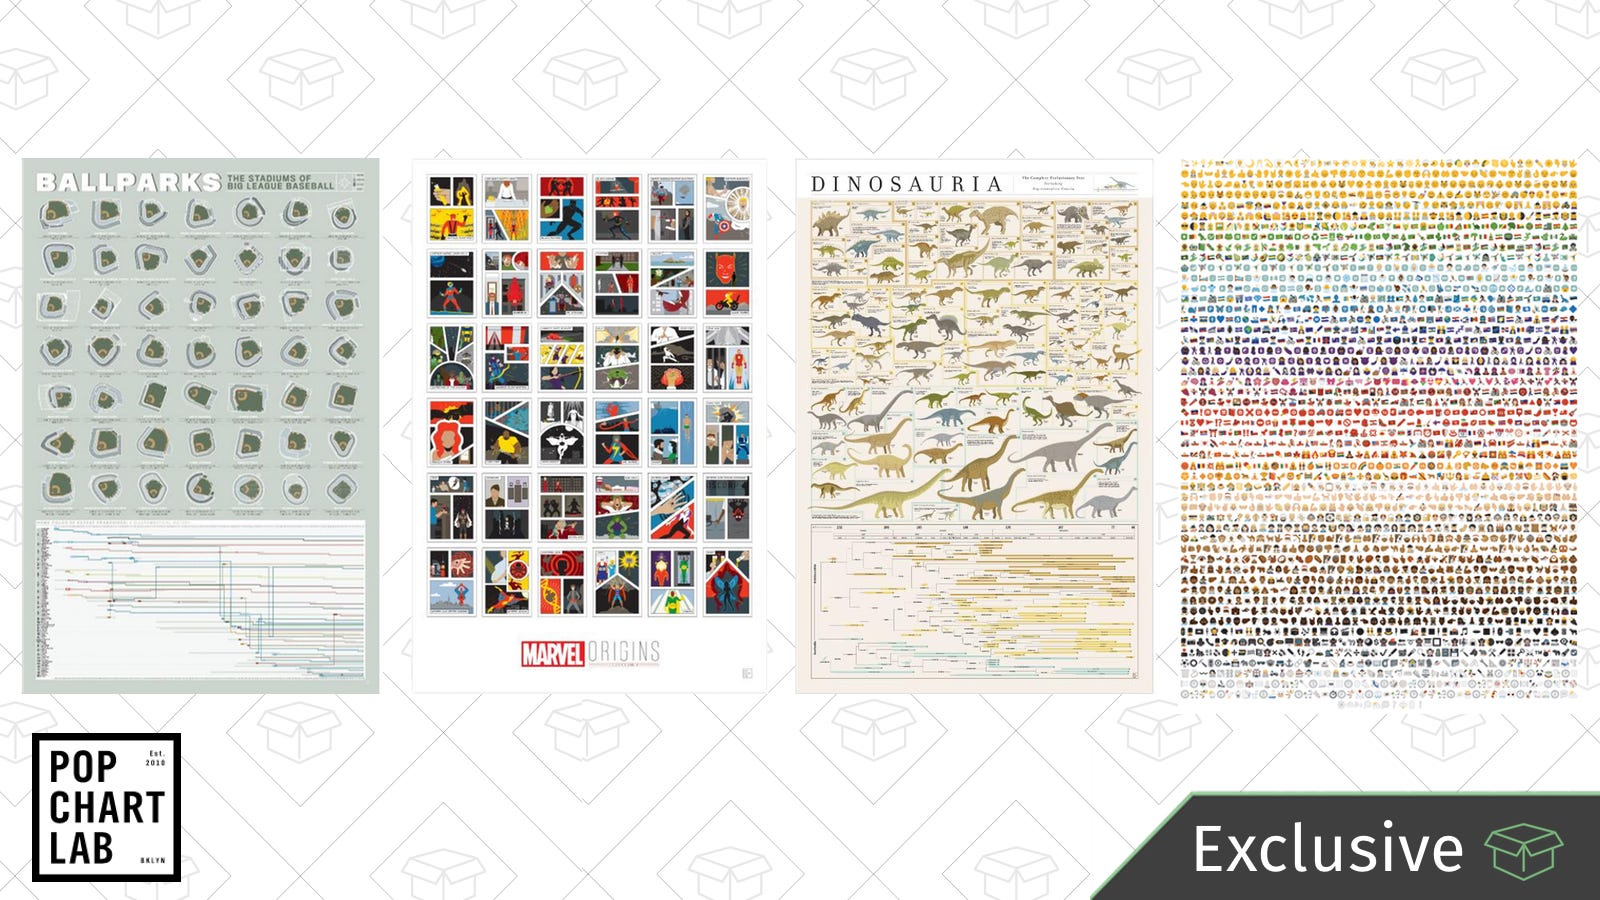 Hang Your Knowledge On The Wall With This Sitewide From Pop Chart Lab Exclusive